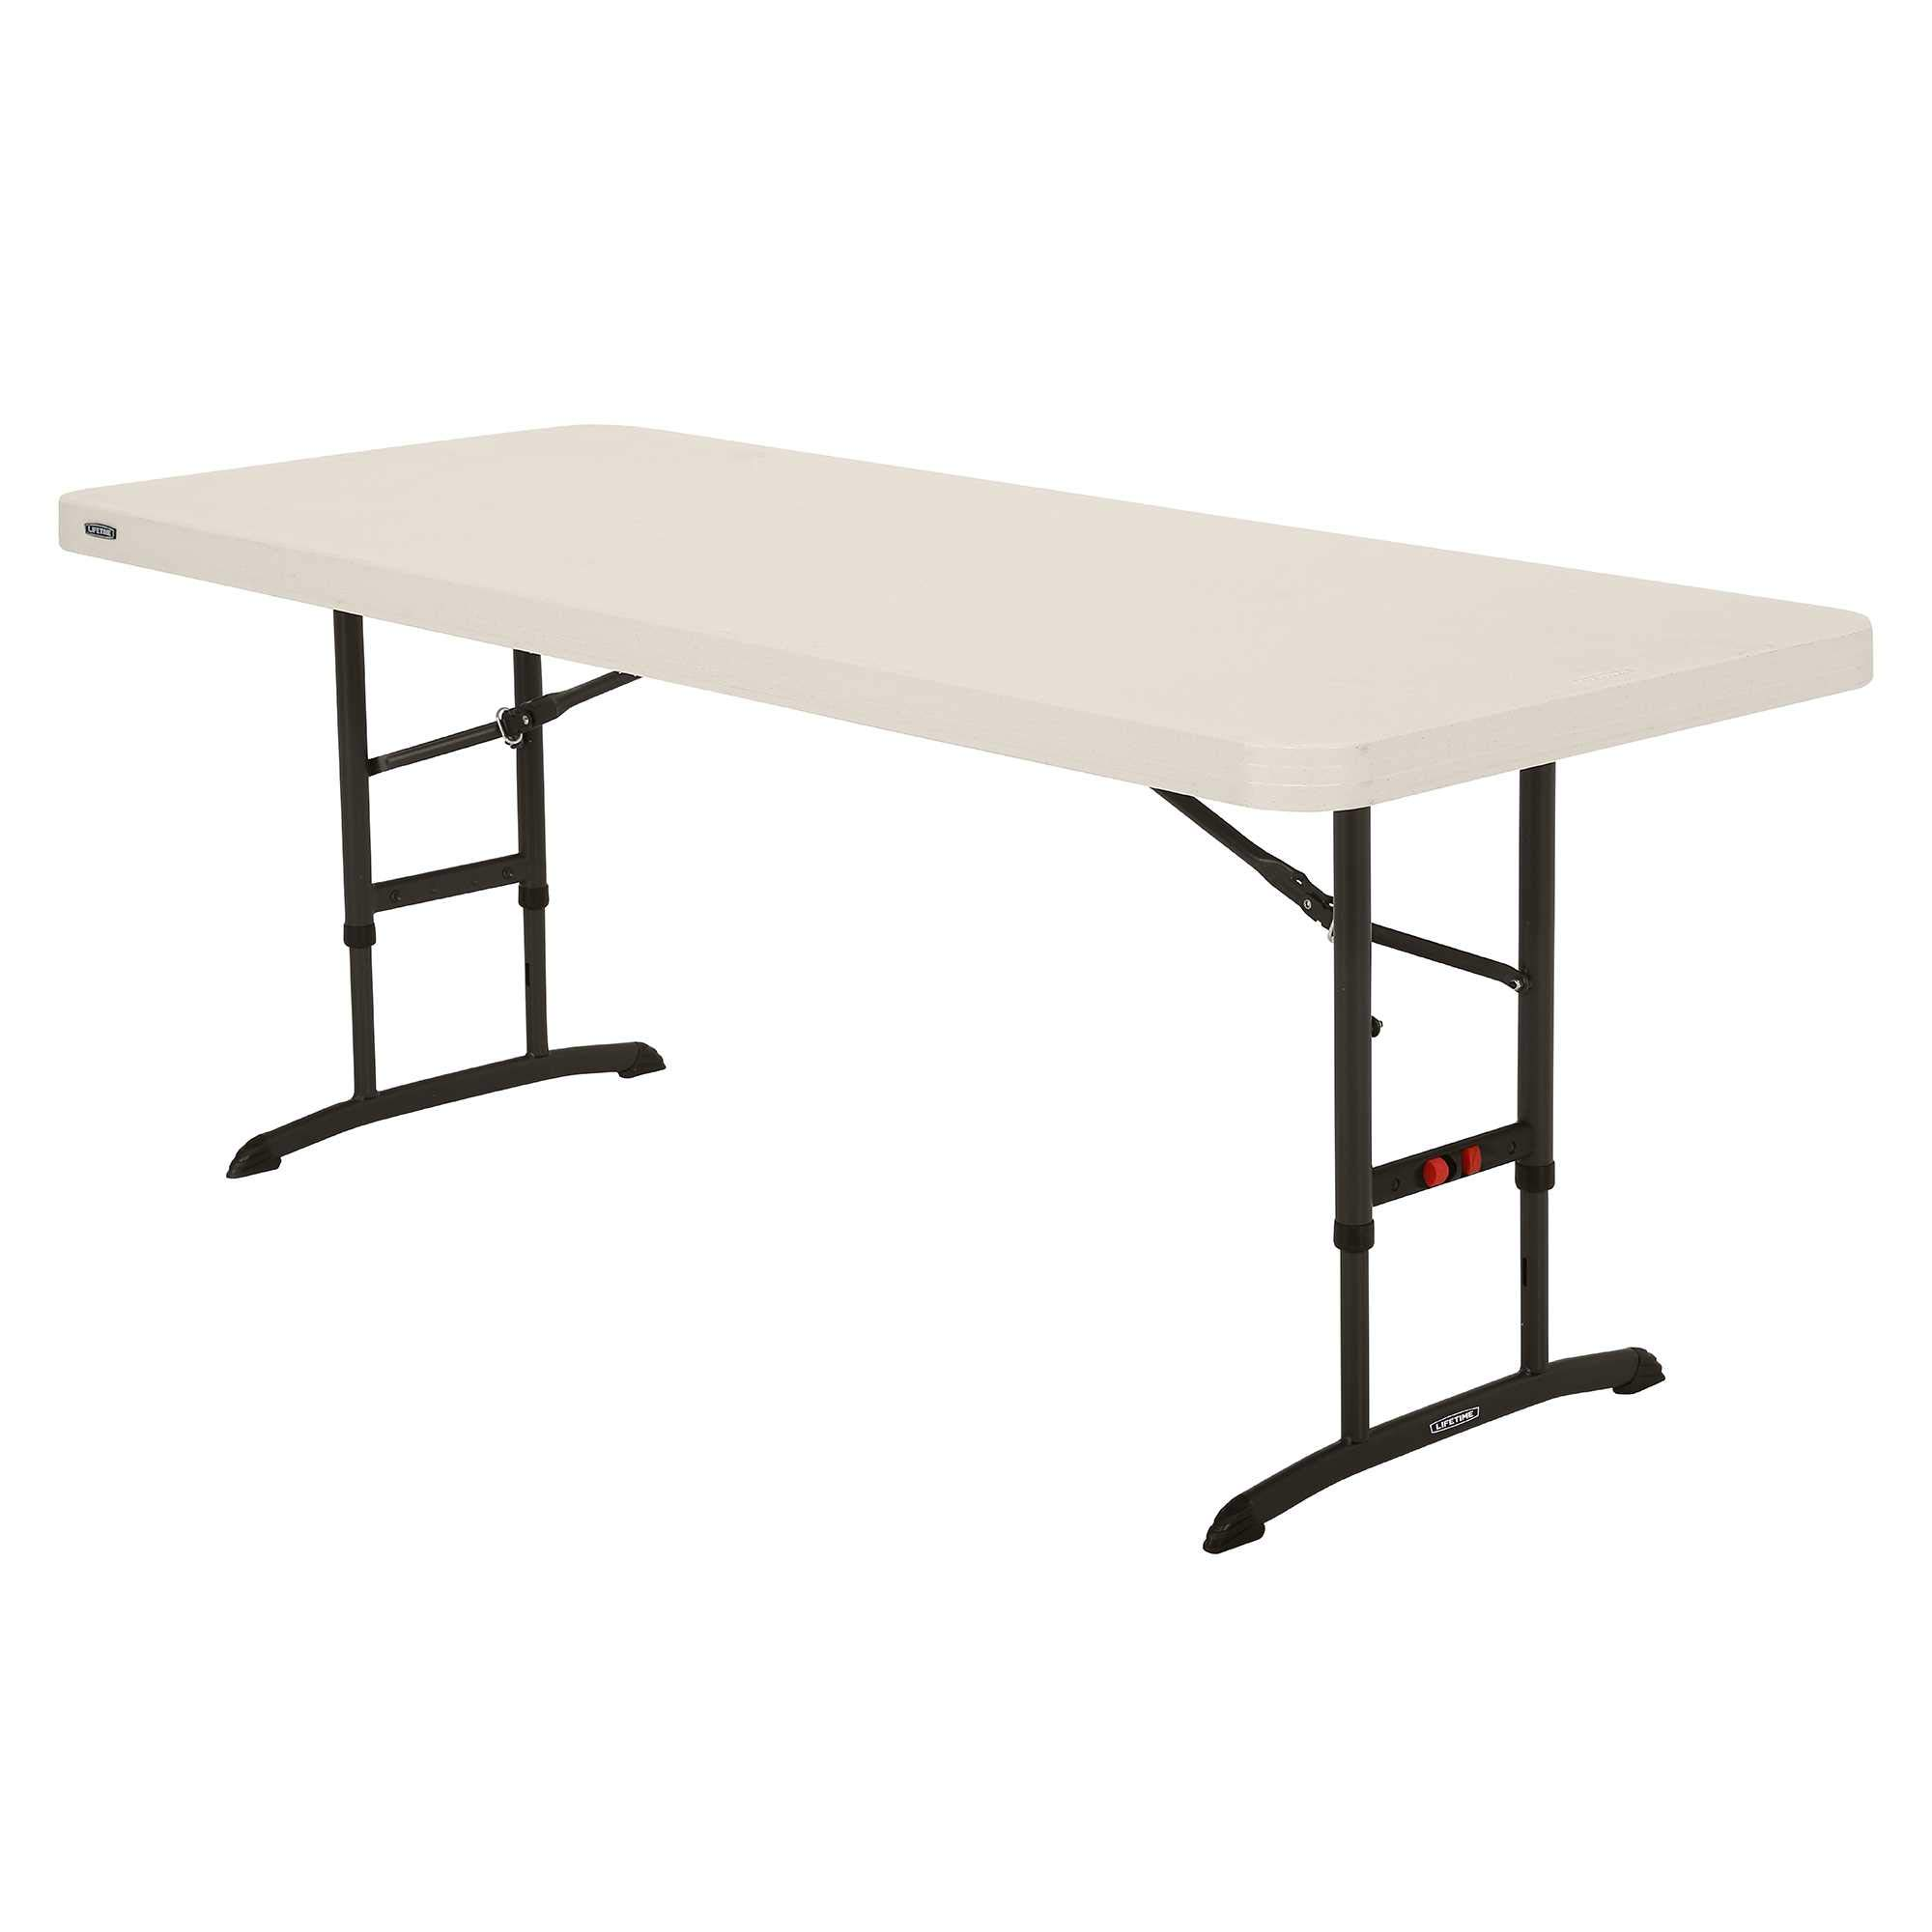 Lifetime 80565 6 ft (1.83 m) Commercial Adjustable Height Folding Table - Almond